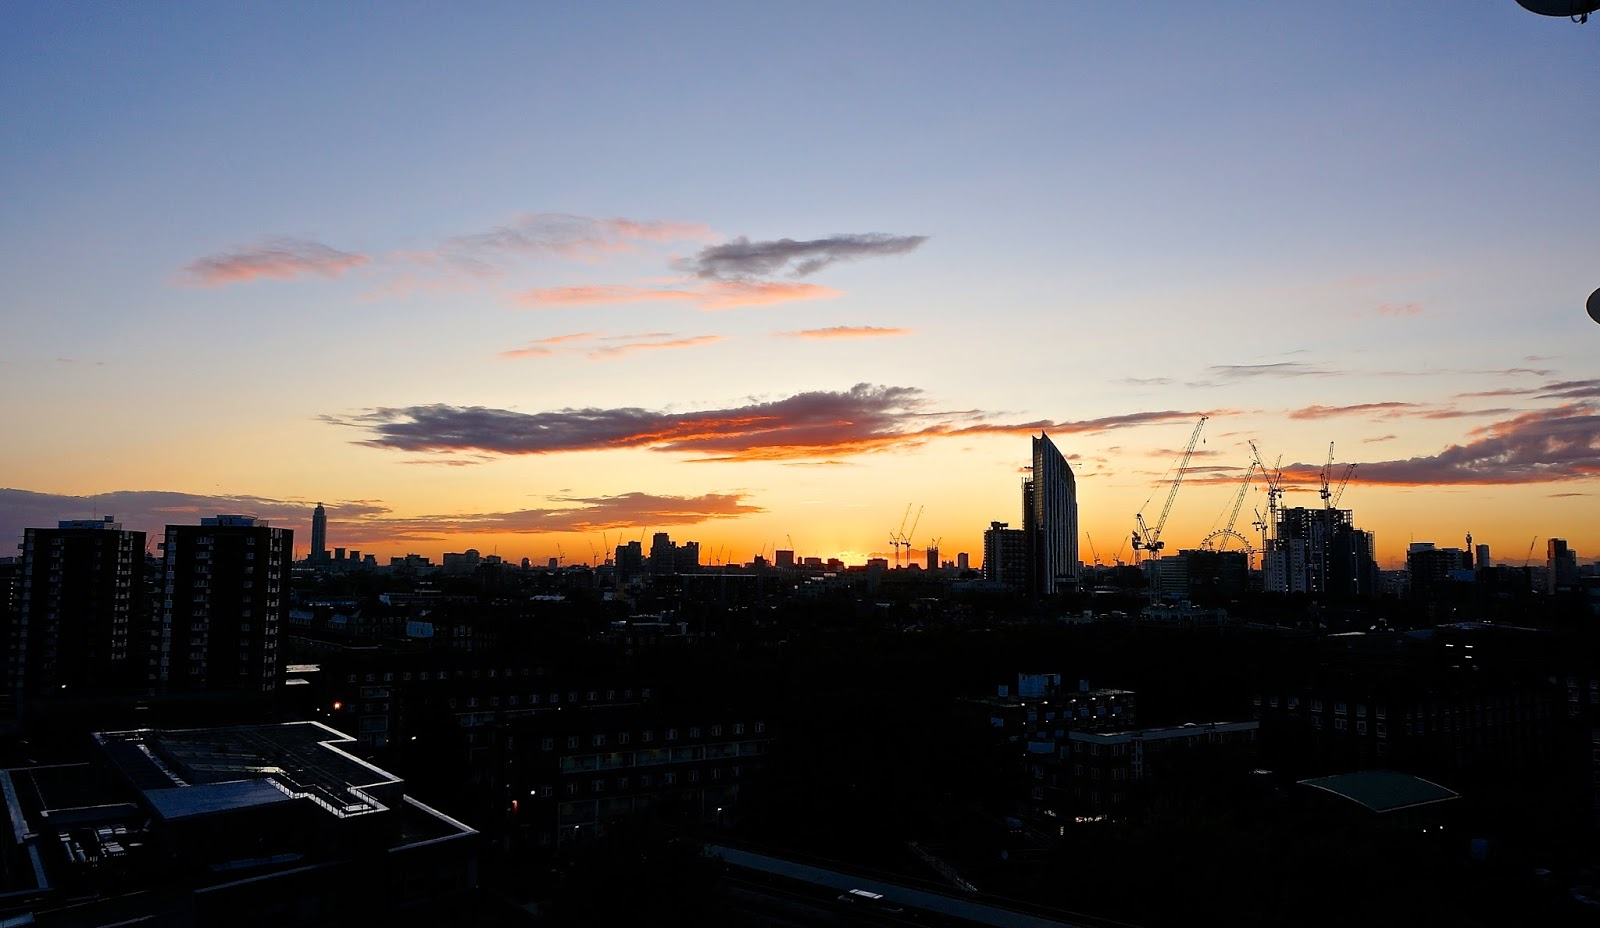 Sunset Rooftops sky view rainbow London Landscape Photography www.lexieblush.co.uk